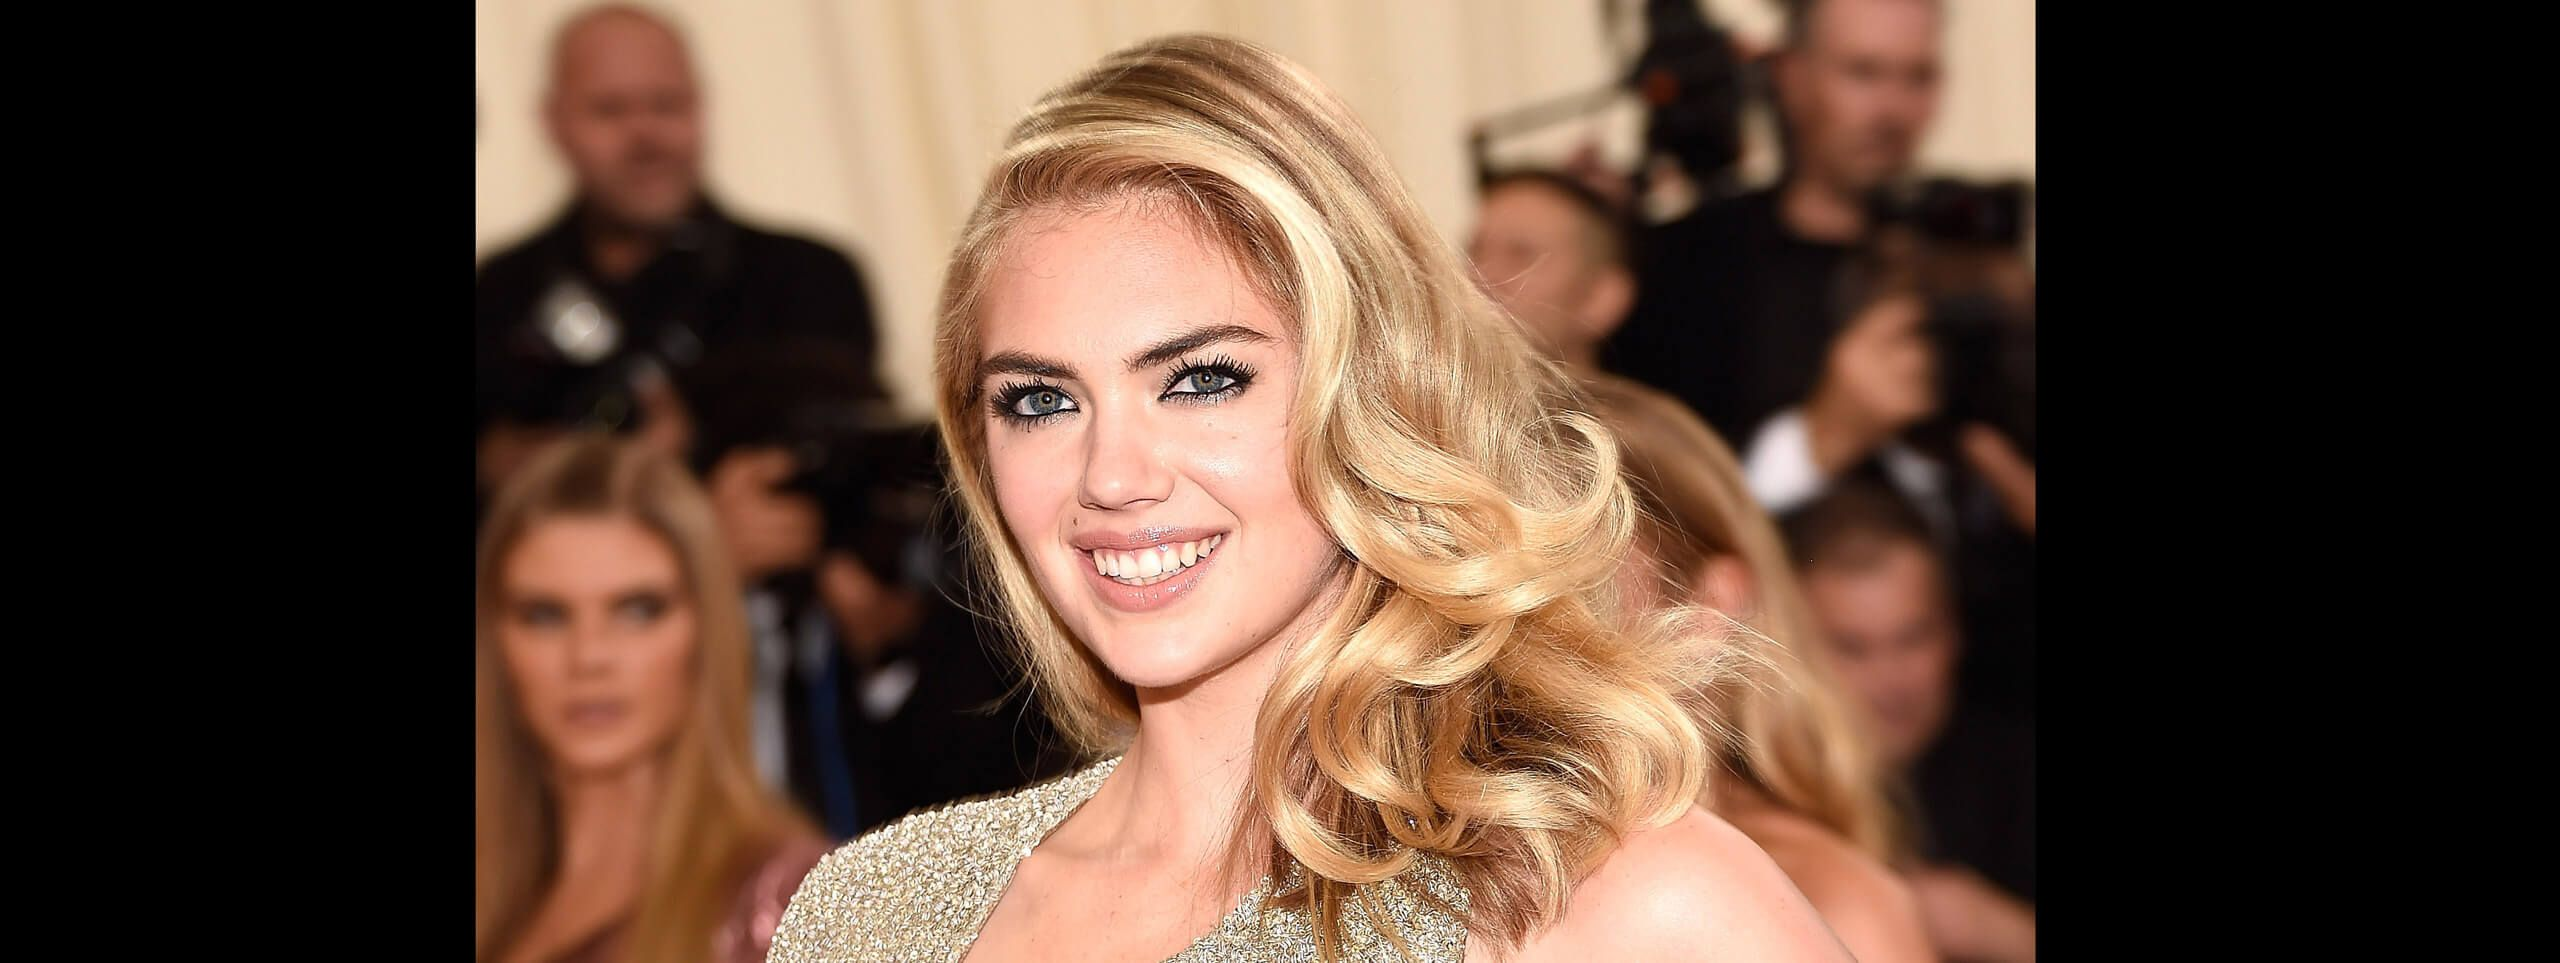 Kate Upton with curly hairstyle